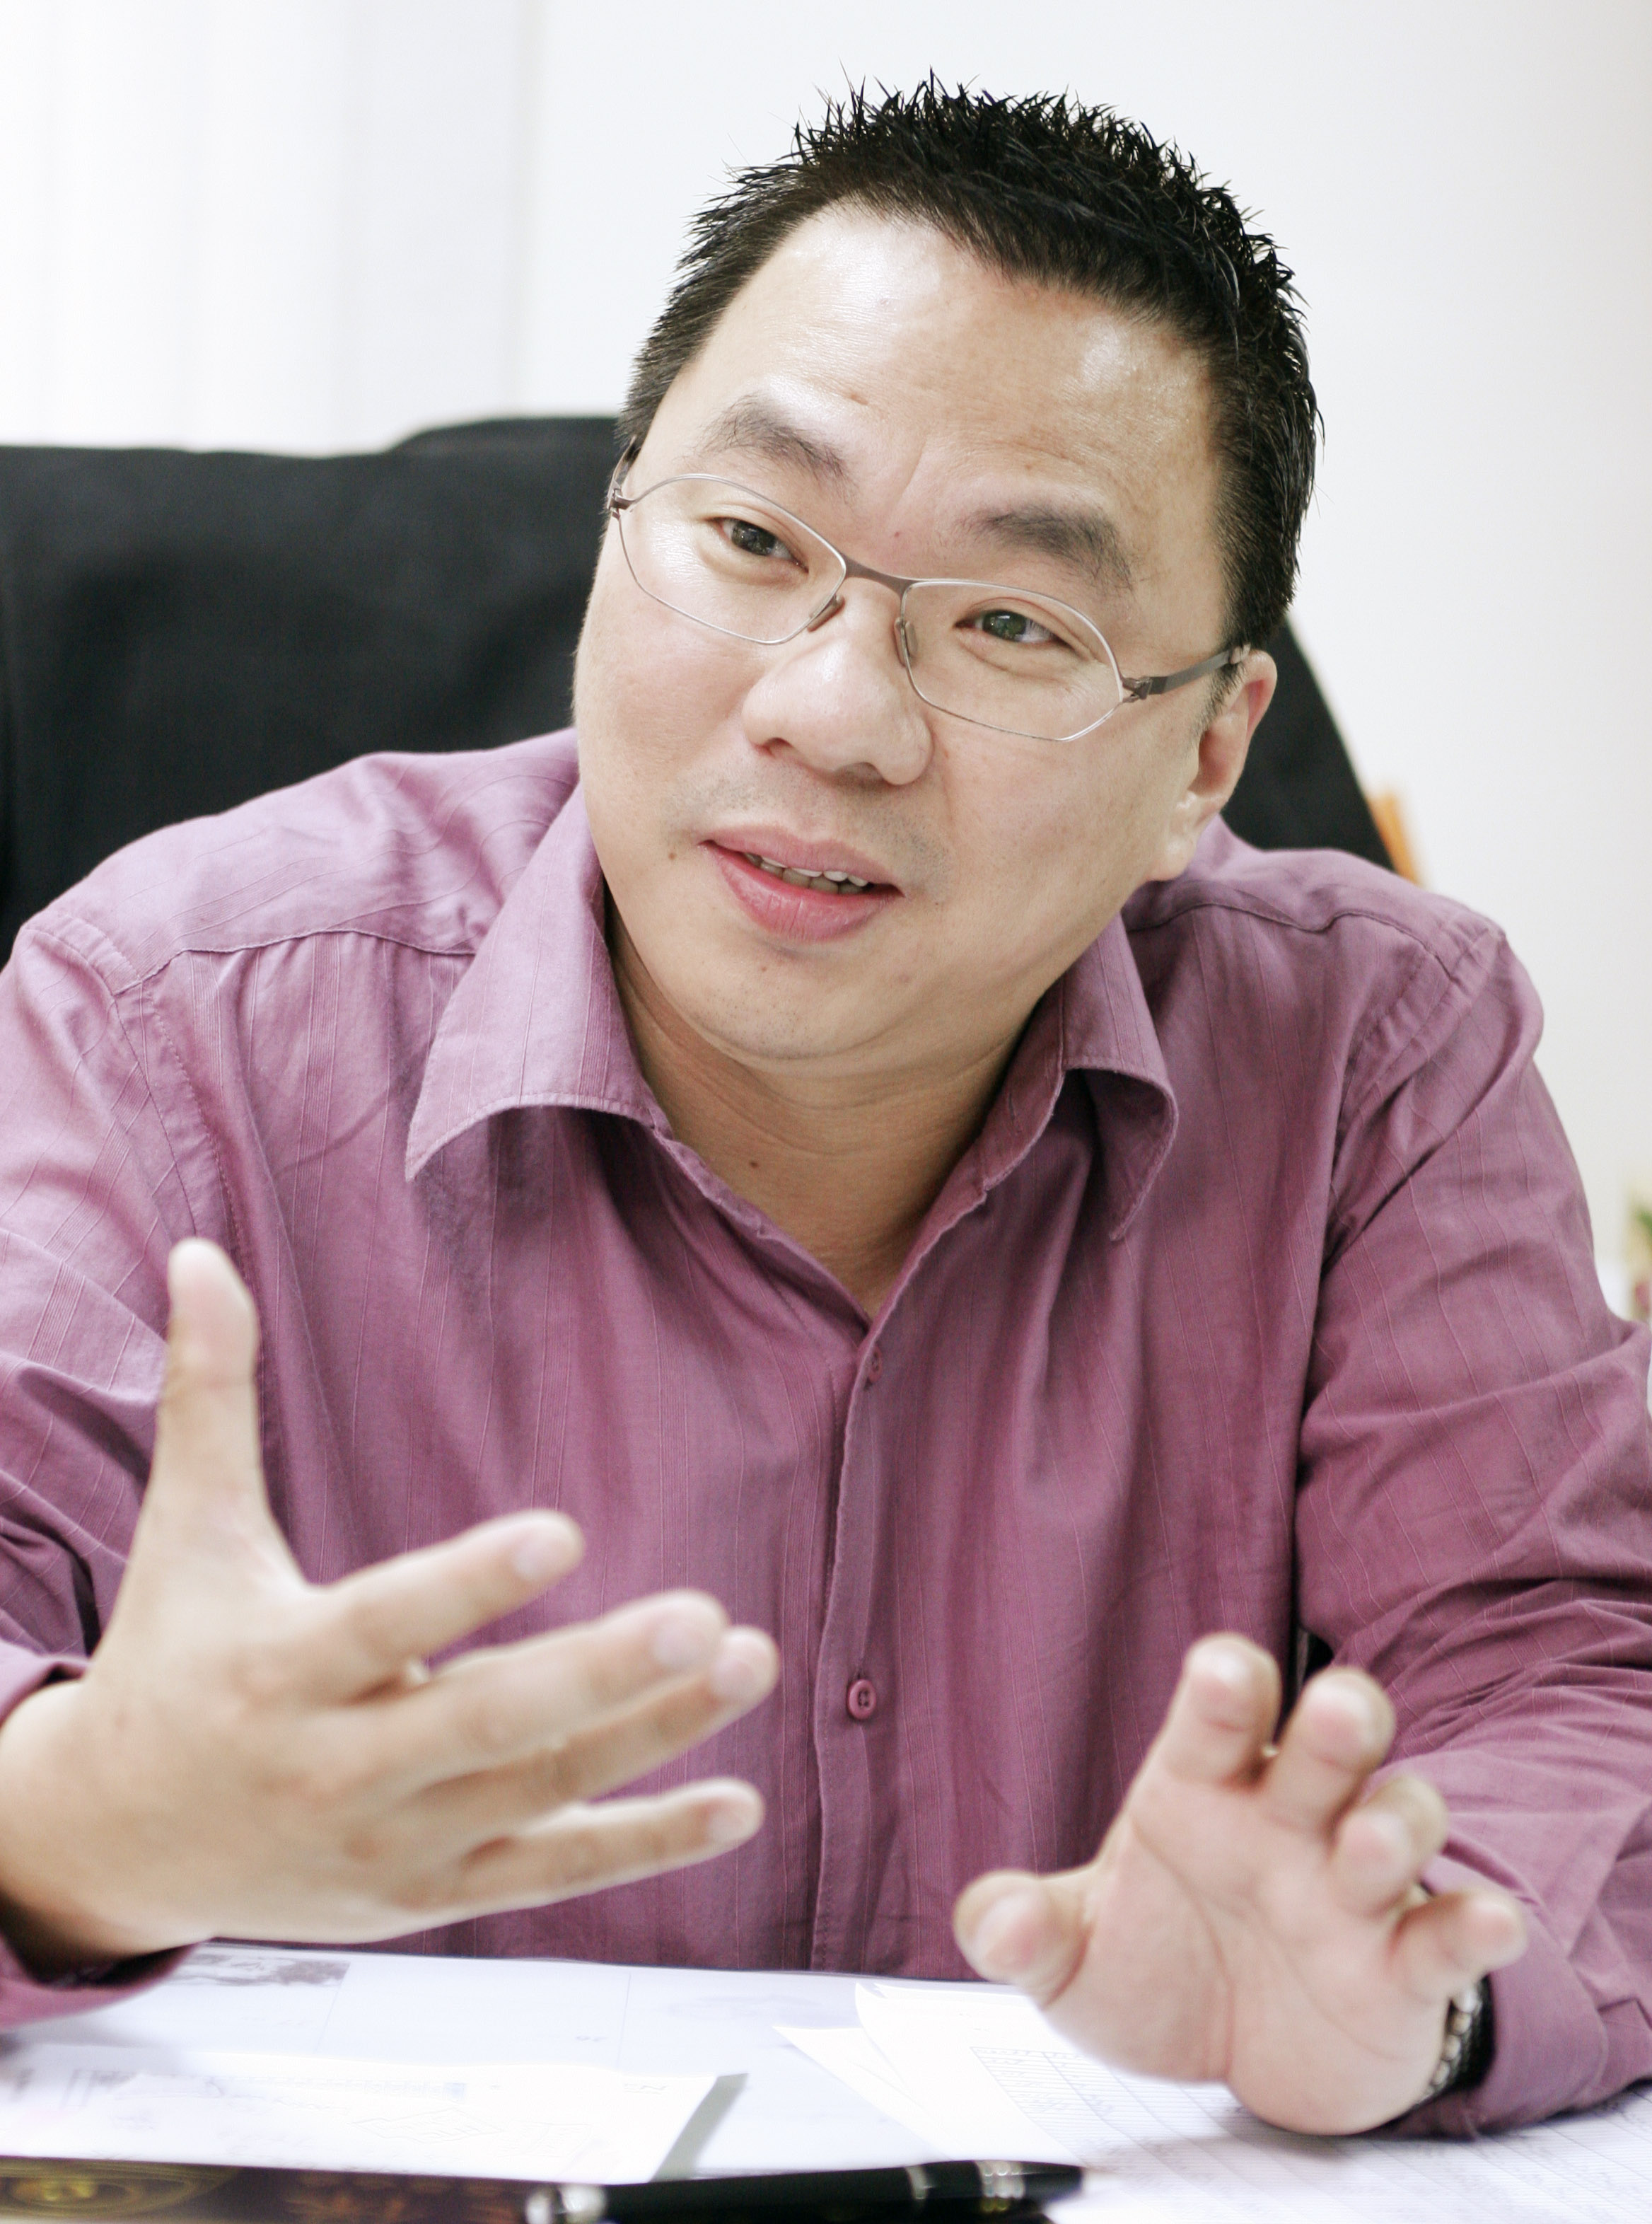 EEC Elite Express CEO Kenneth Keh says his team will be expanding their service offerings to Indonesian migrants starting this year.